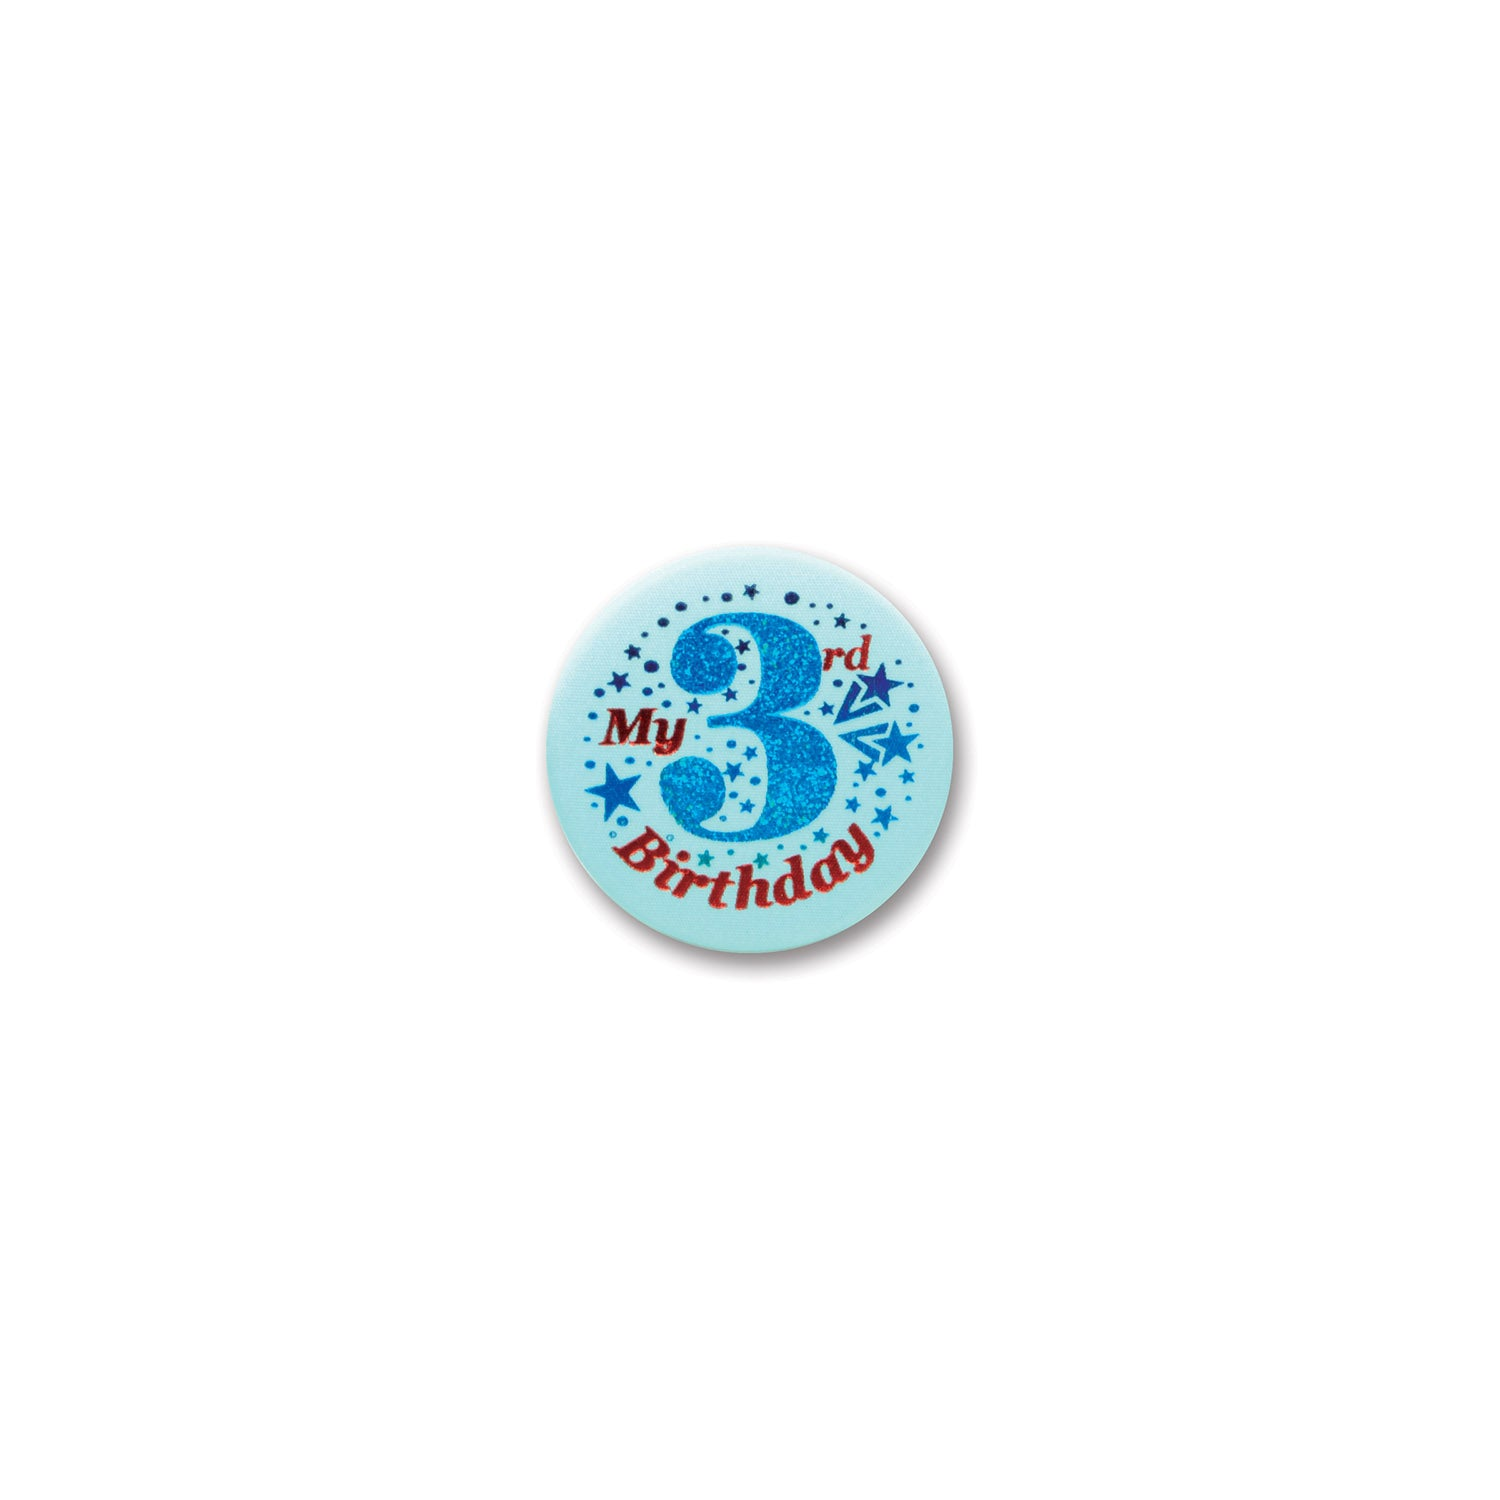 My 3rd Birthday Satin Button, blue by Beistle - 3rd Birthday Party Decorations